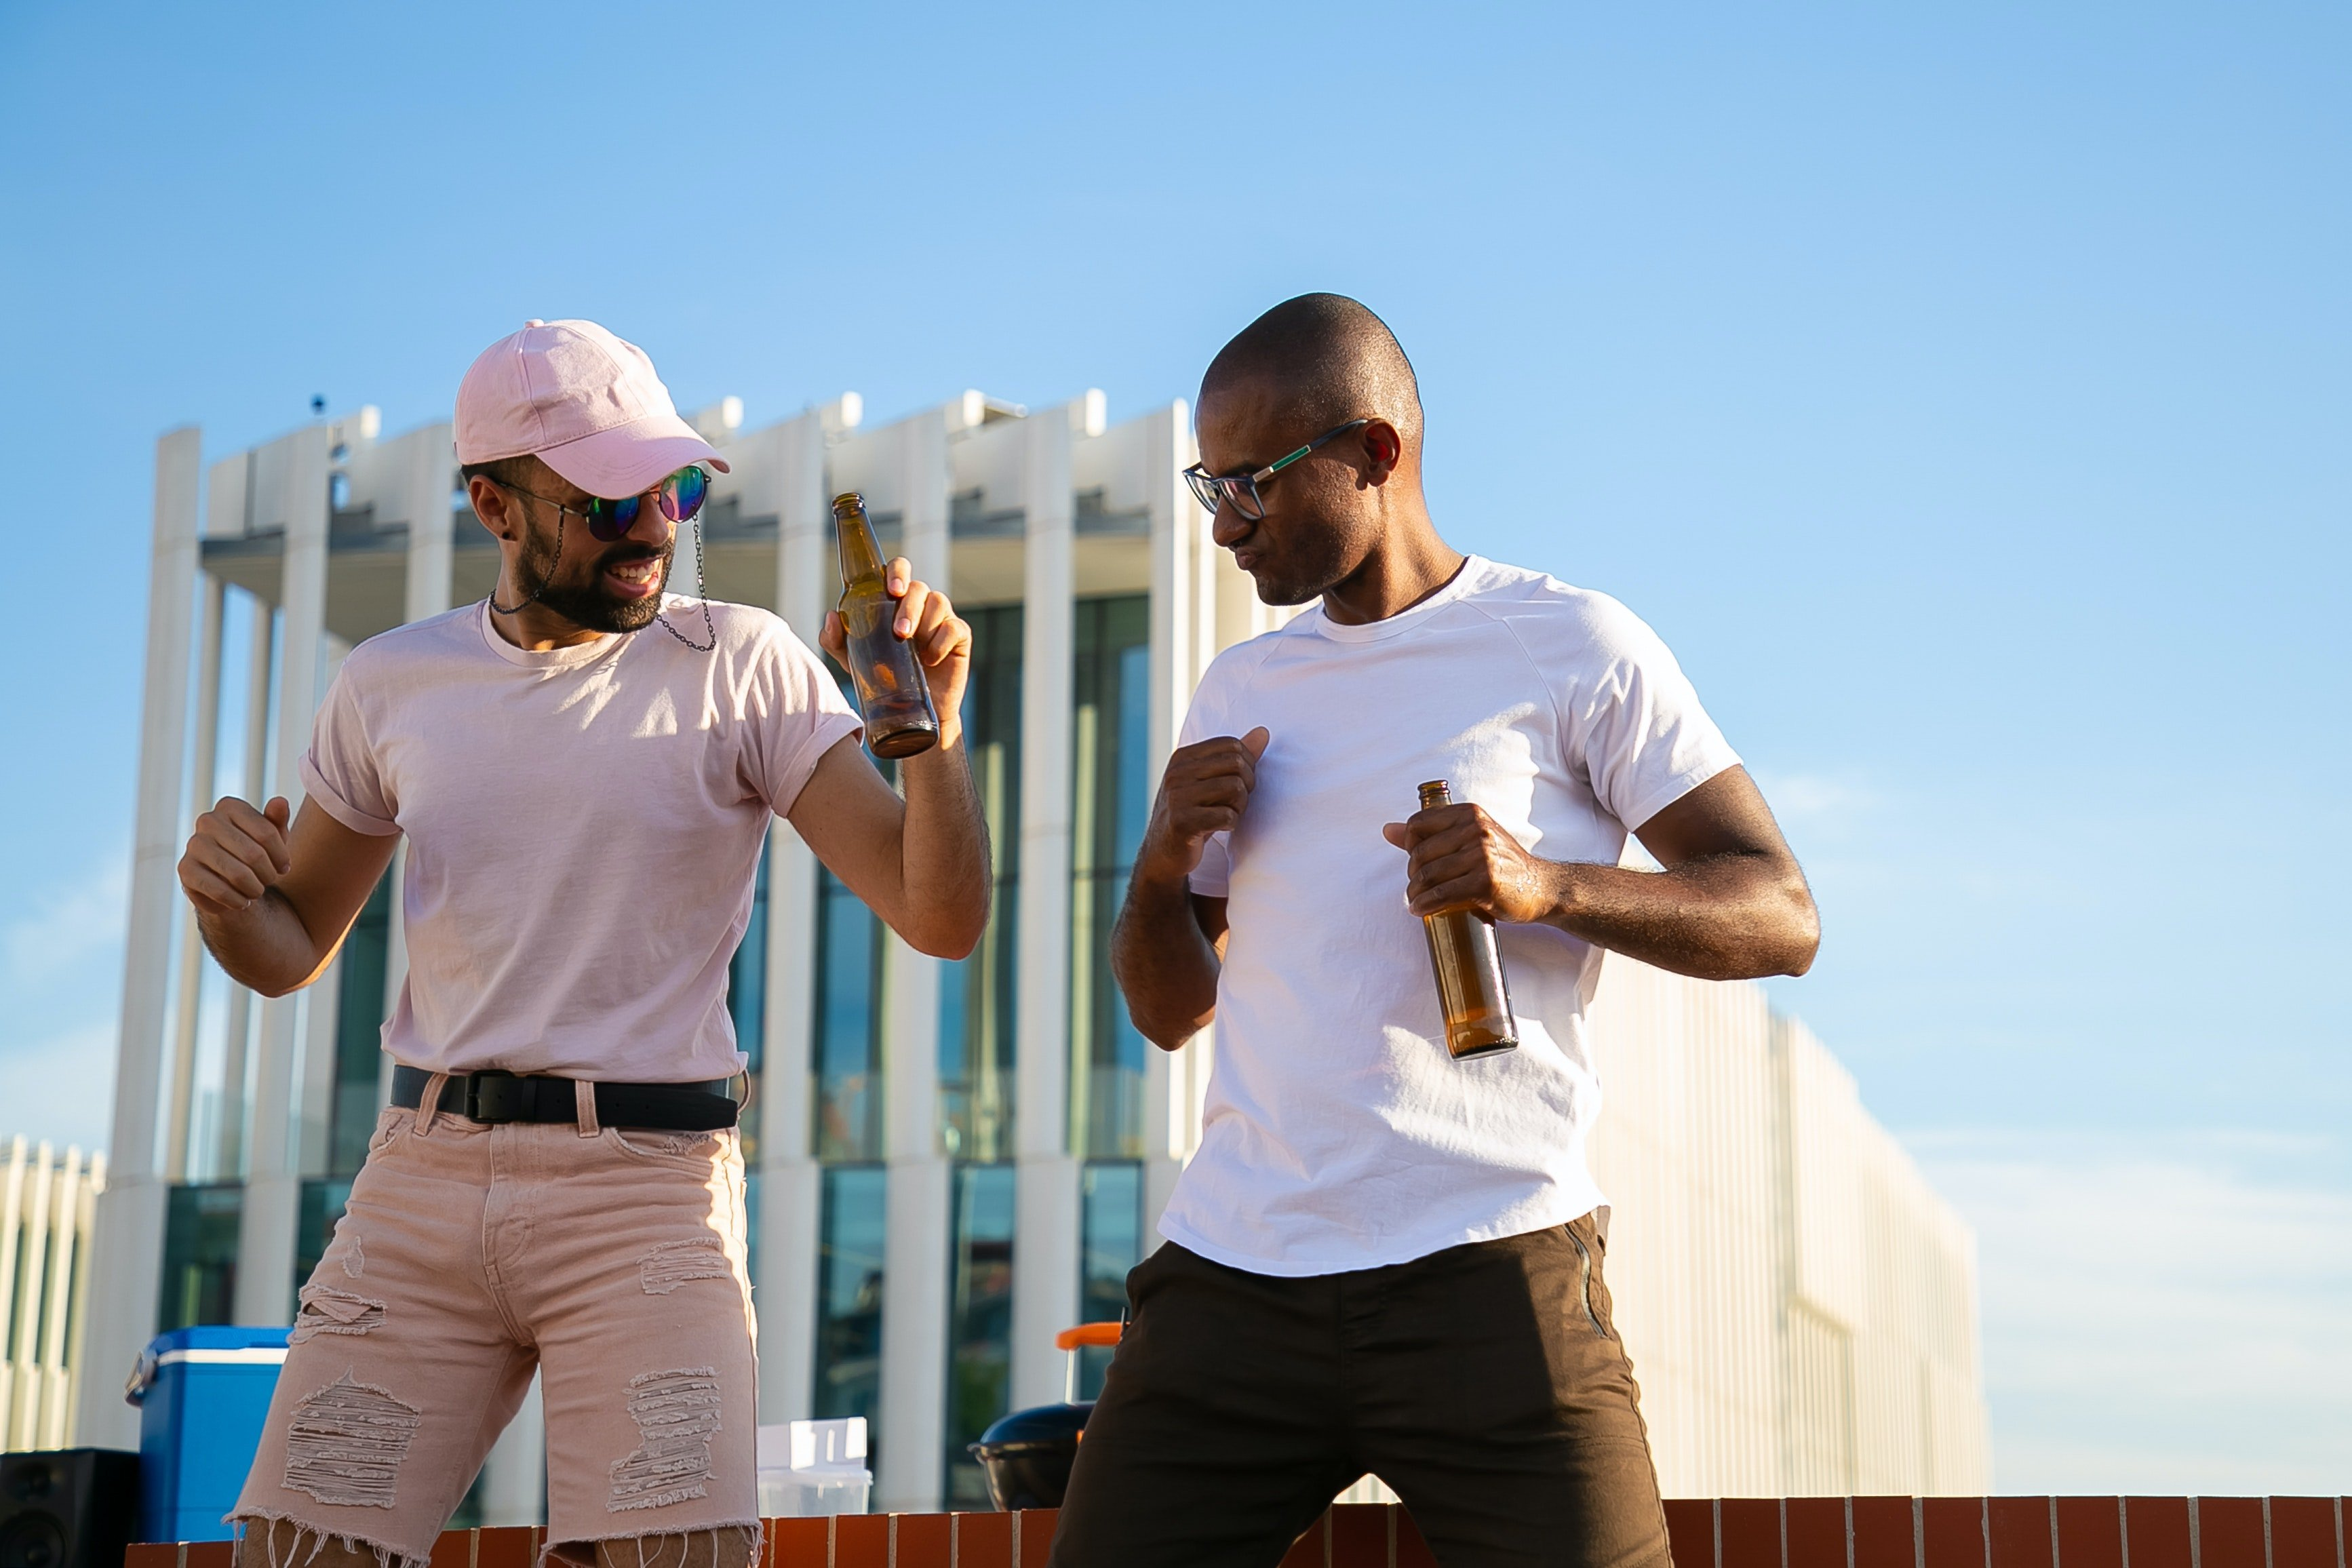 Two men drinking beer and dancing | Photo: Pexels